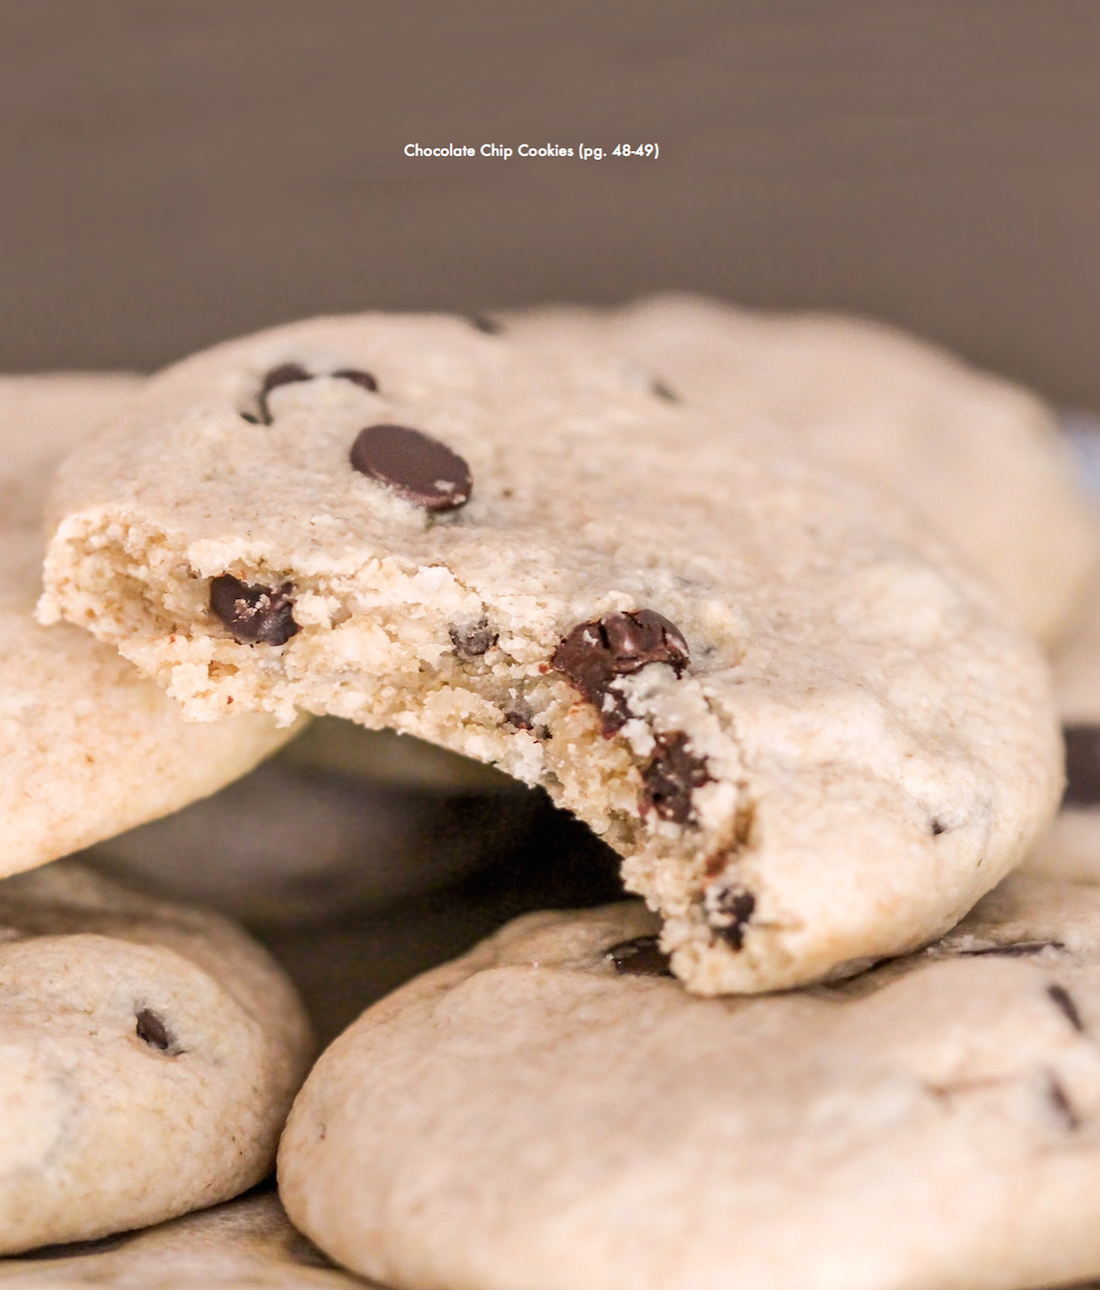 Healthy Chewy Chocolate Chip Cookies recipe (refined sugar free, gluten free, dairy free, vegan) - Healthy Dessert Recipes at Desserts with Benefits